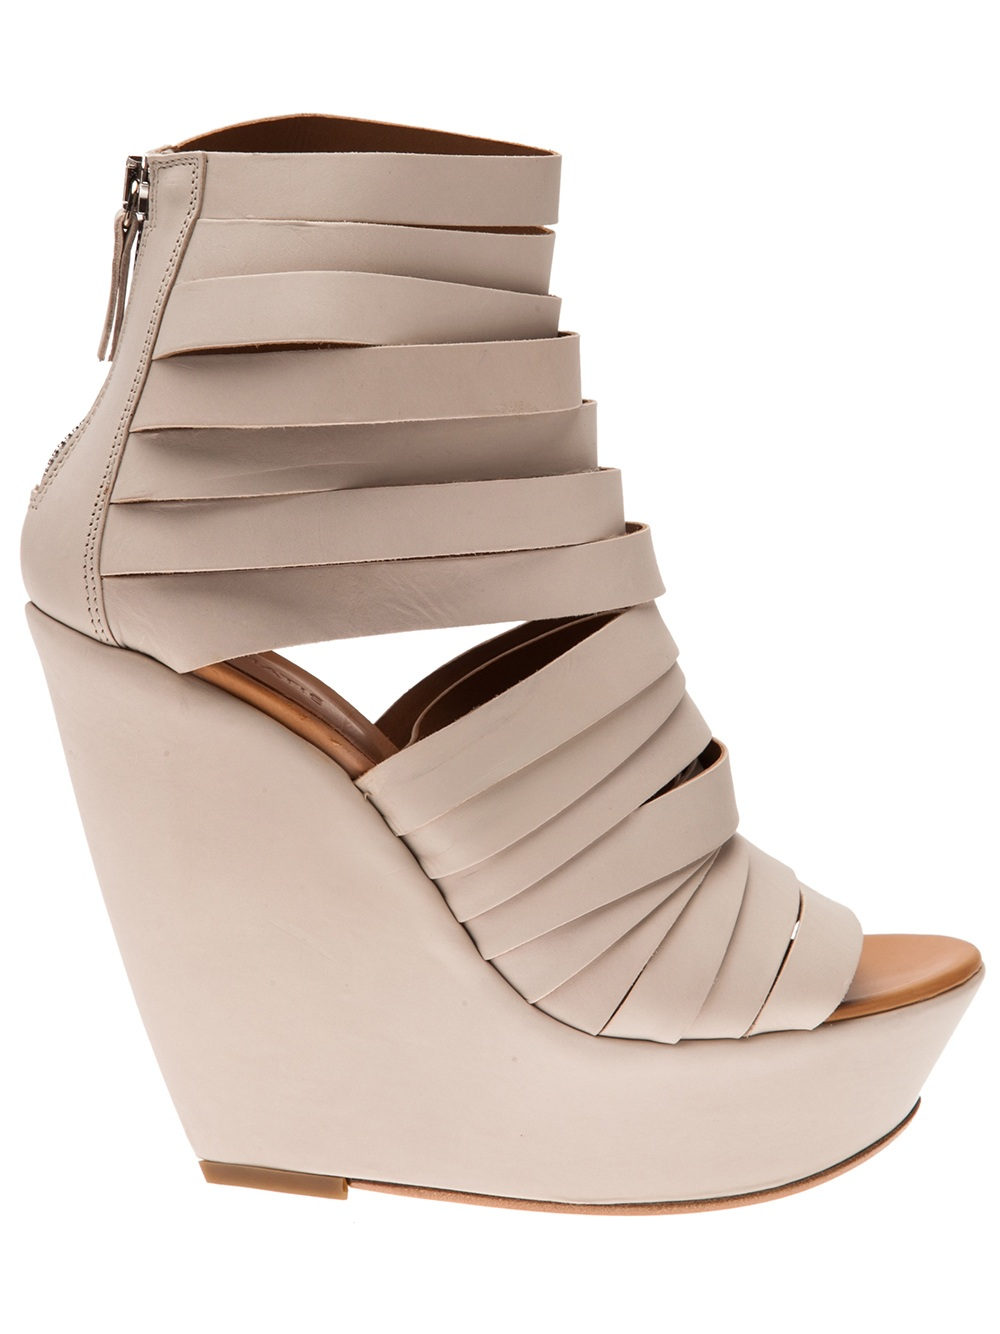 8506c74f43a Vic Matié Strappy Wedge Sandal in Natural - Lyst